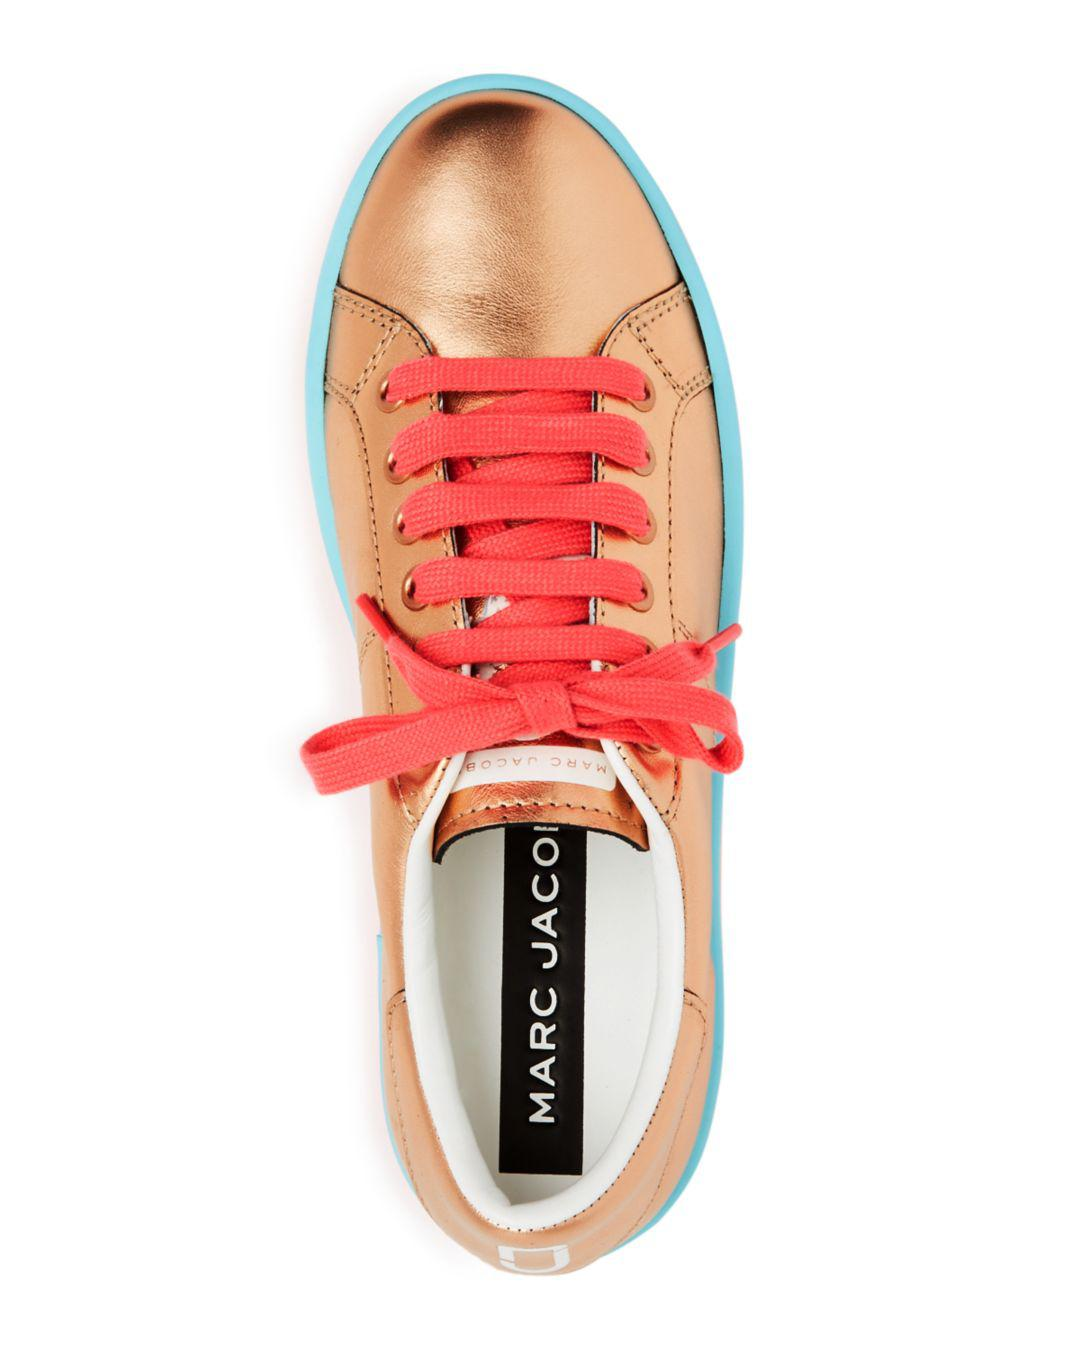 Marc Jacobs Women's Empire Leather Lace Up Platform Sneakers in Rose Gold (Pink)